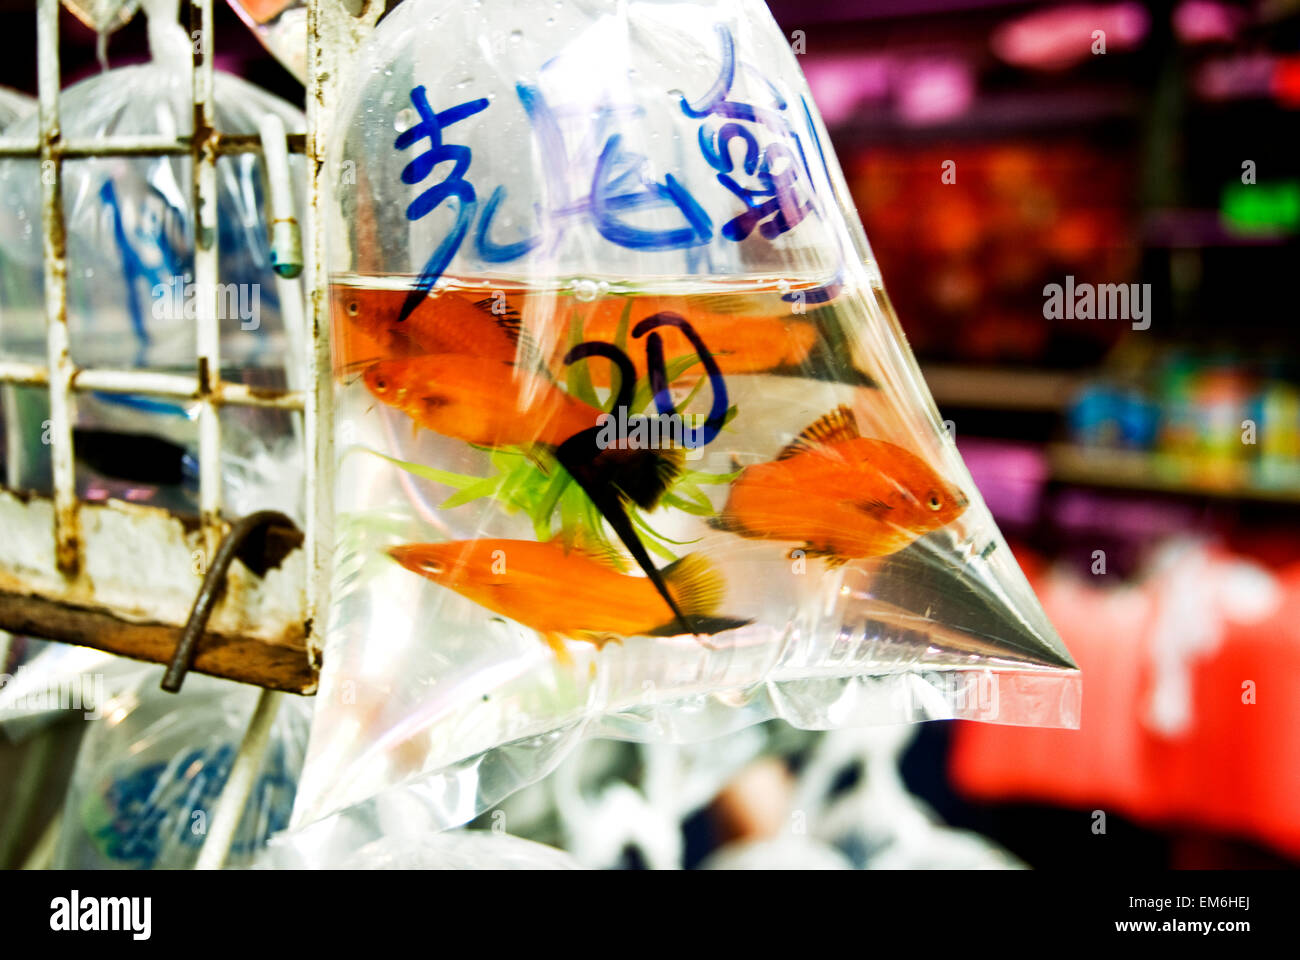 China, Mong Kok K; Hong Kong, Gold Fish For Sale In Small Store on Shanghai Street - Stock Image